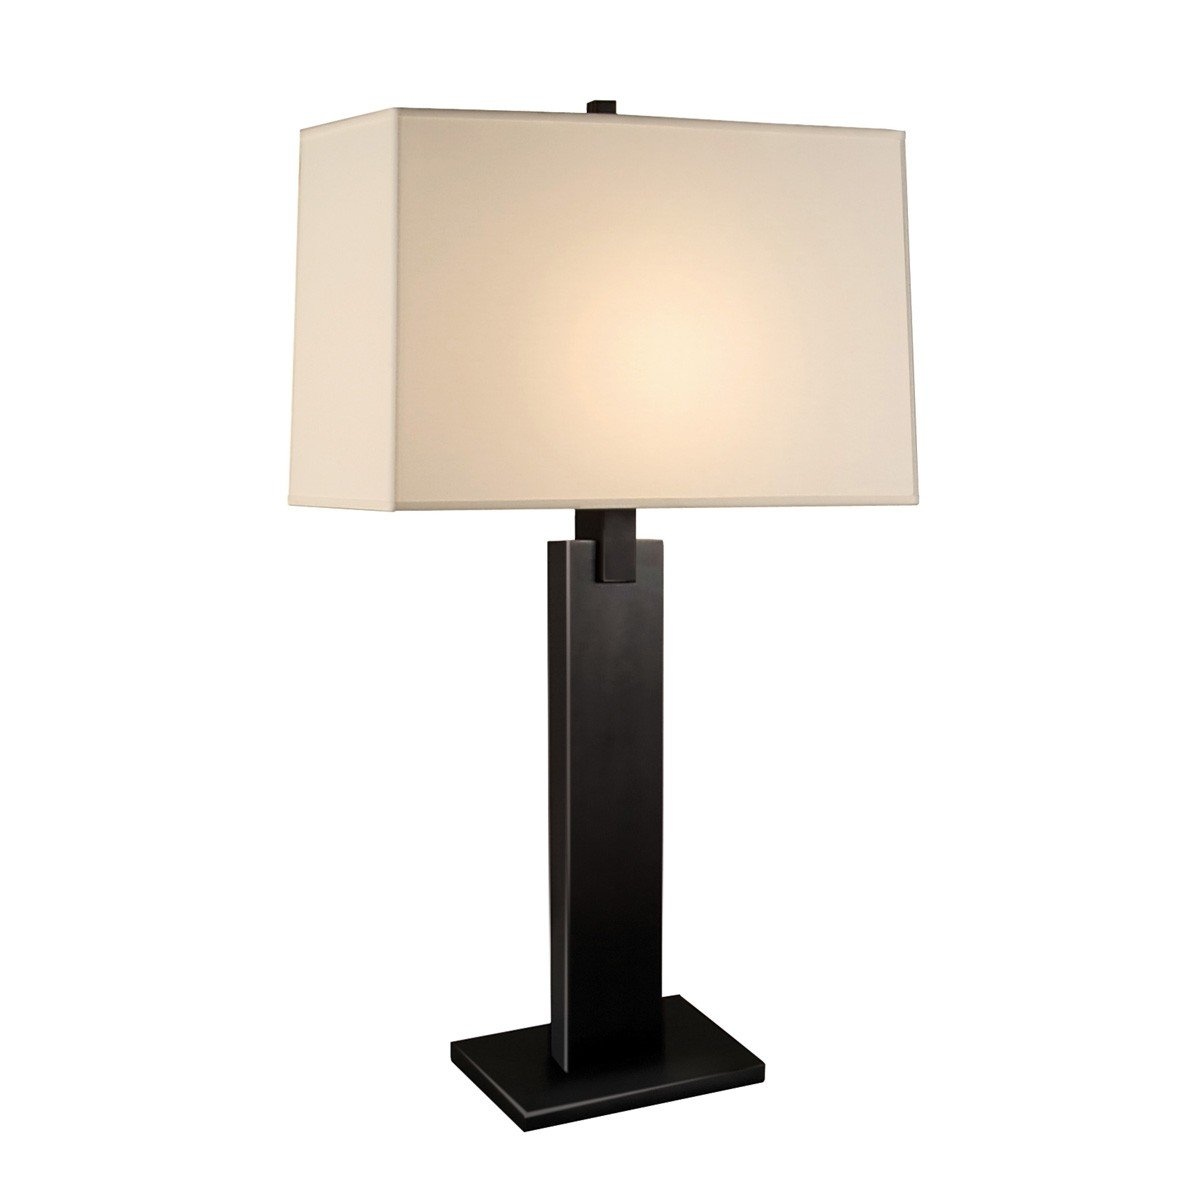 Sonneman 3305.51, Monolith Tall 3 Way Table Lamp, 1 Light, 18 Total Watts, Black Brass